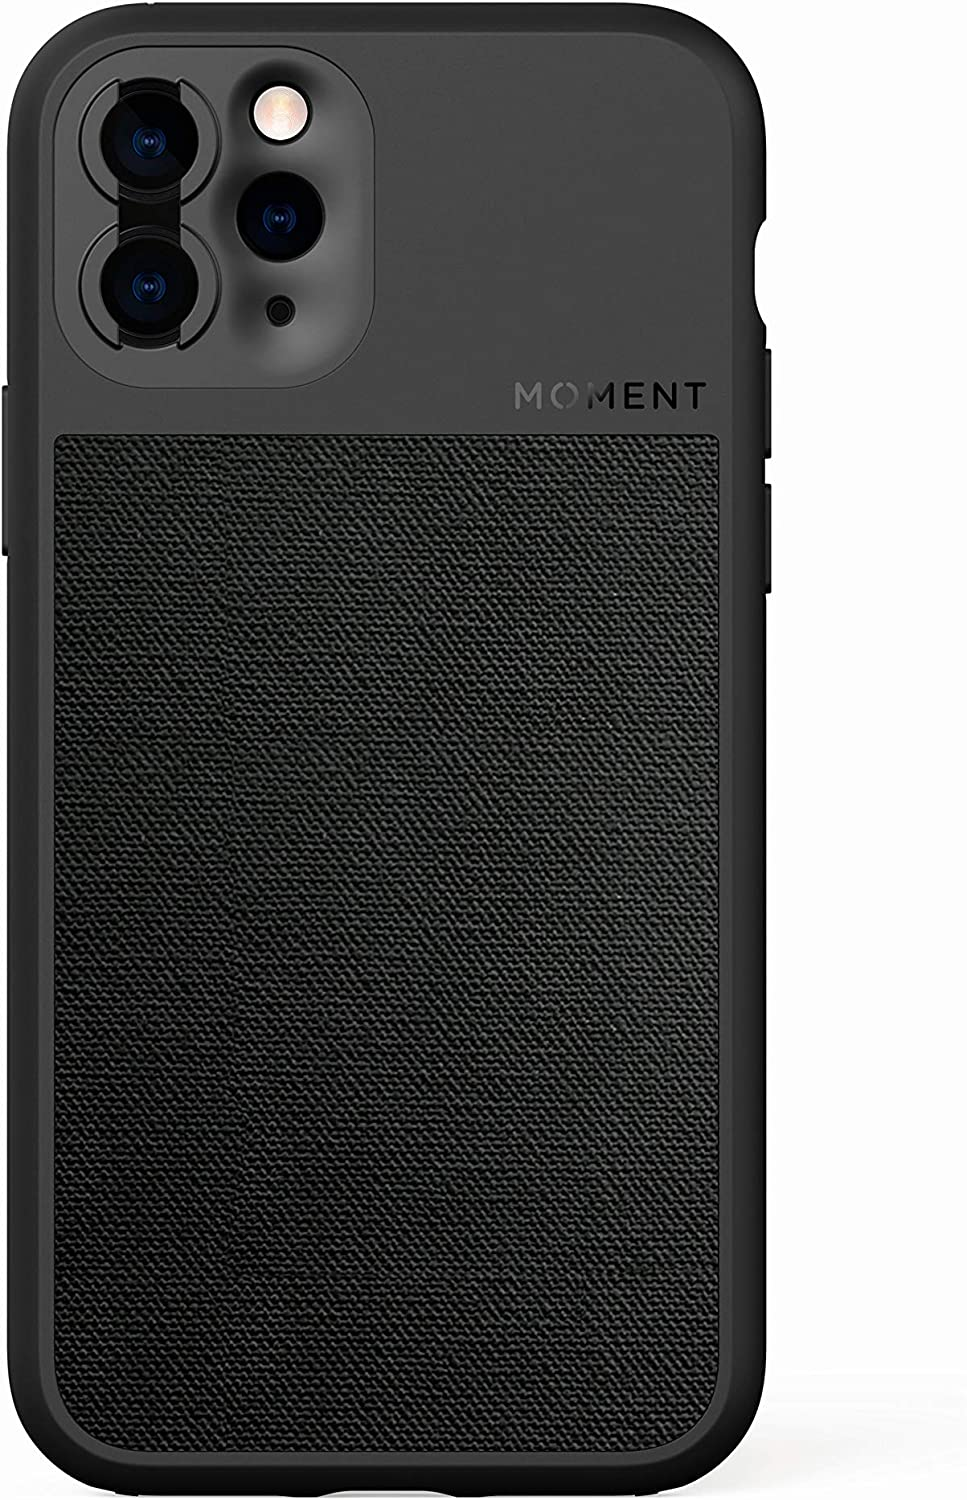 Moment Case for iPhone 11 Pro - 6ft Drop Protection and Strap Attachment